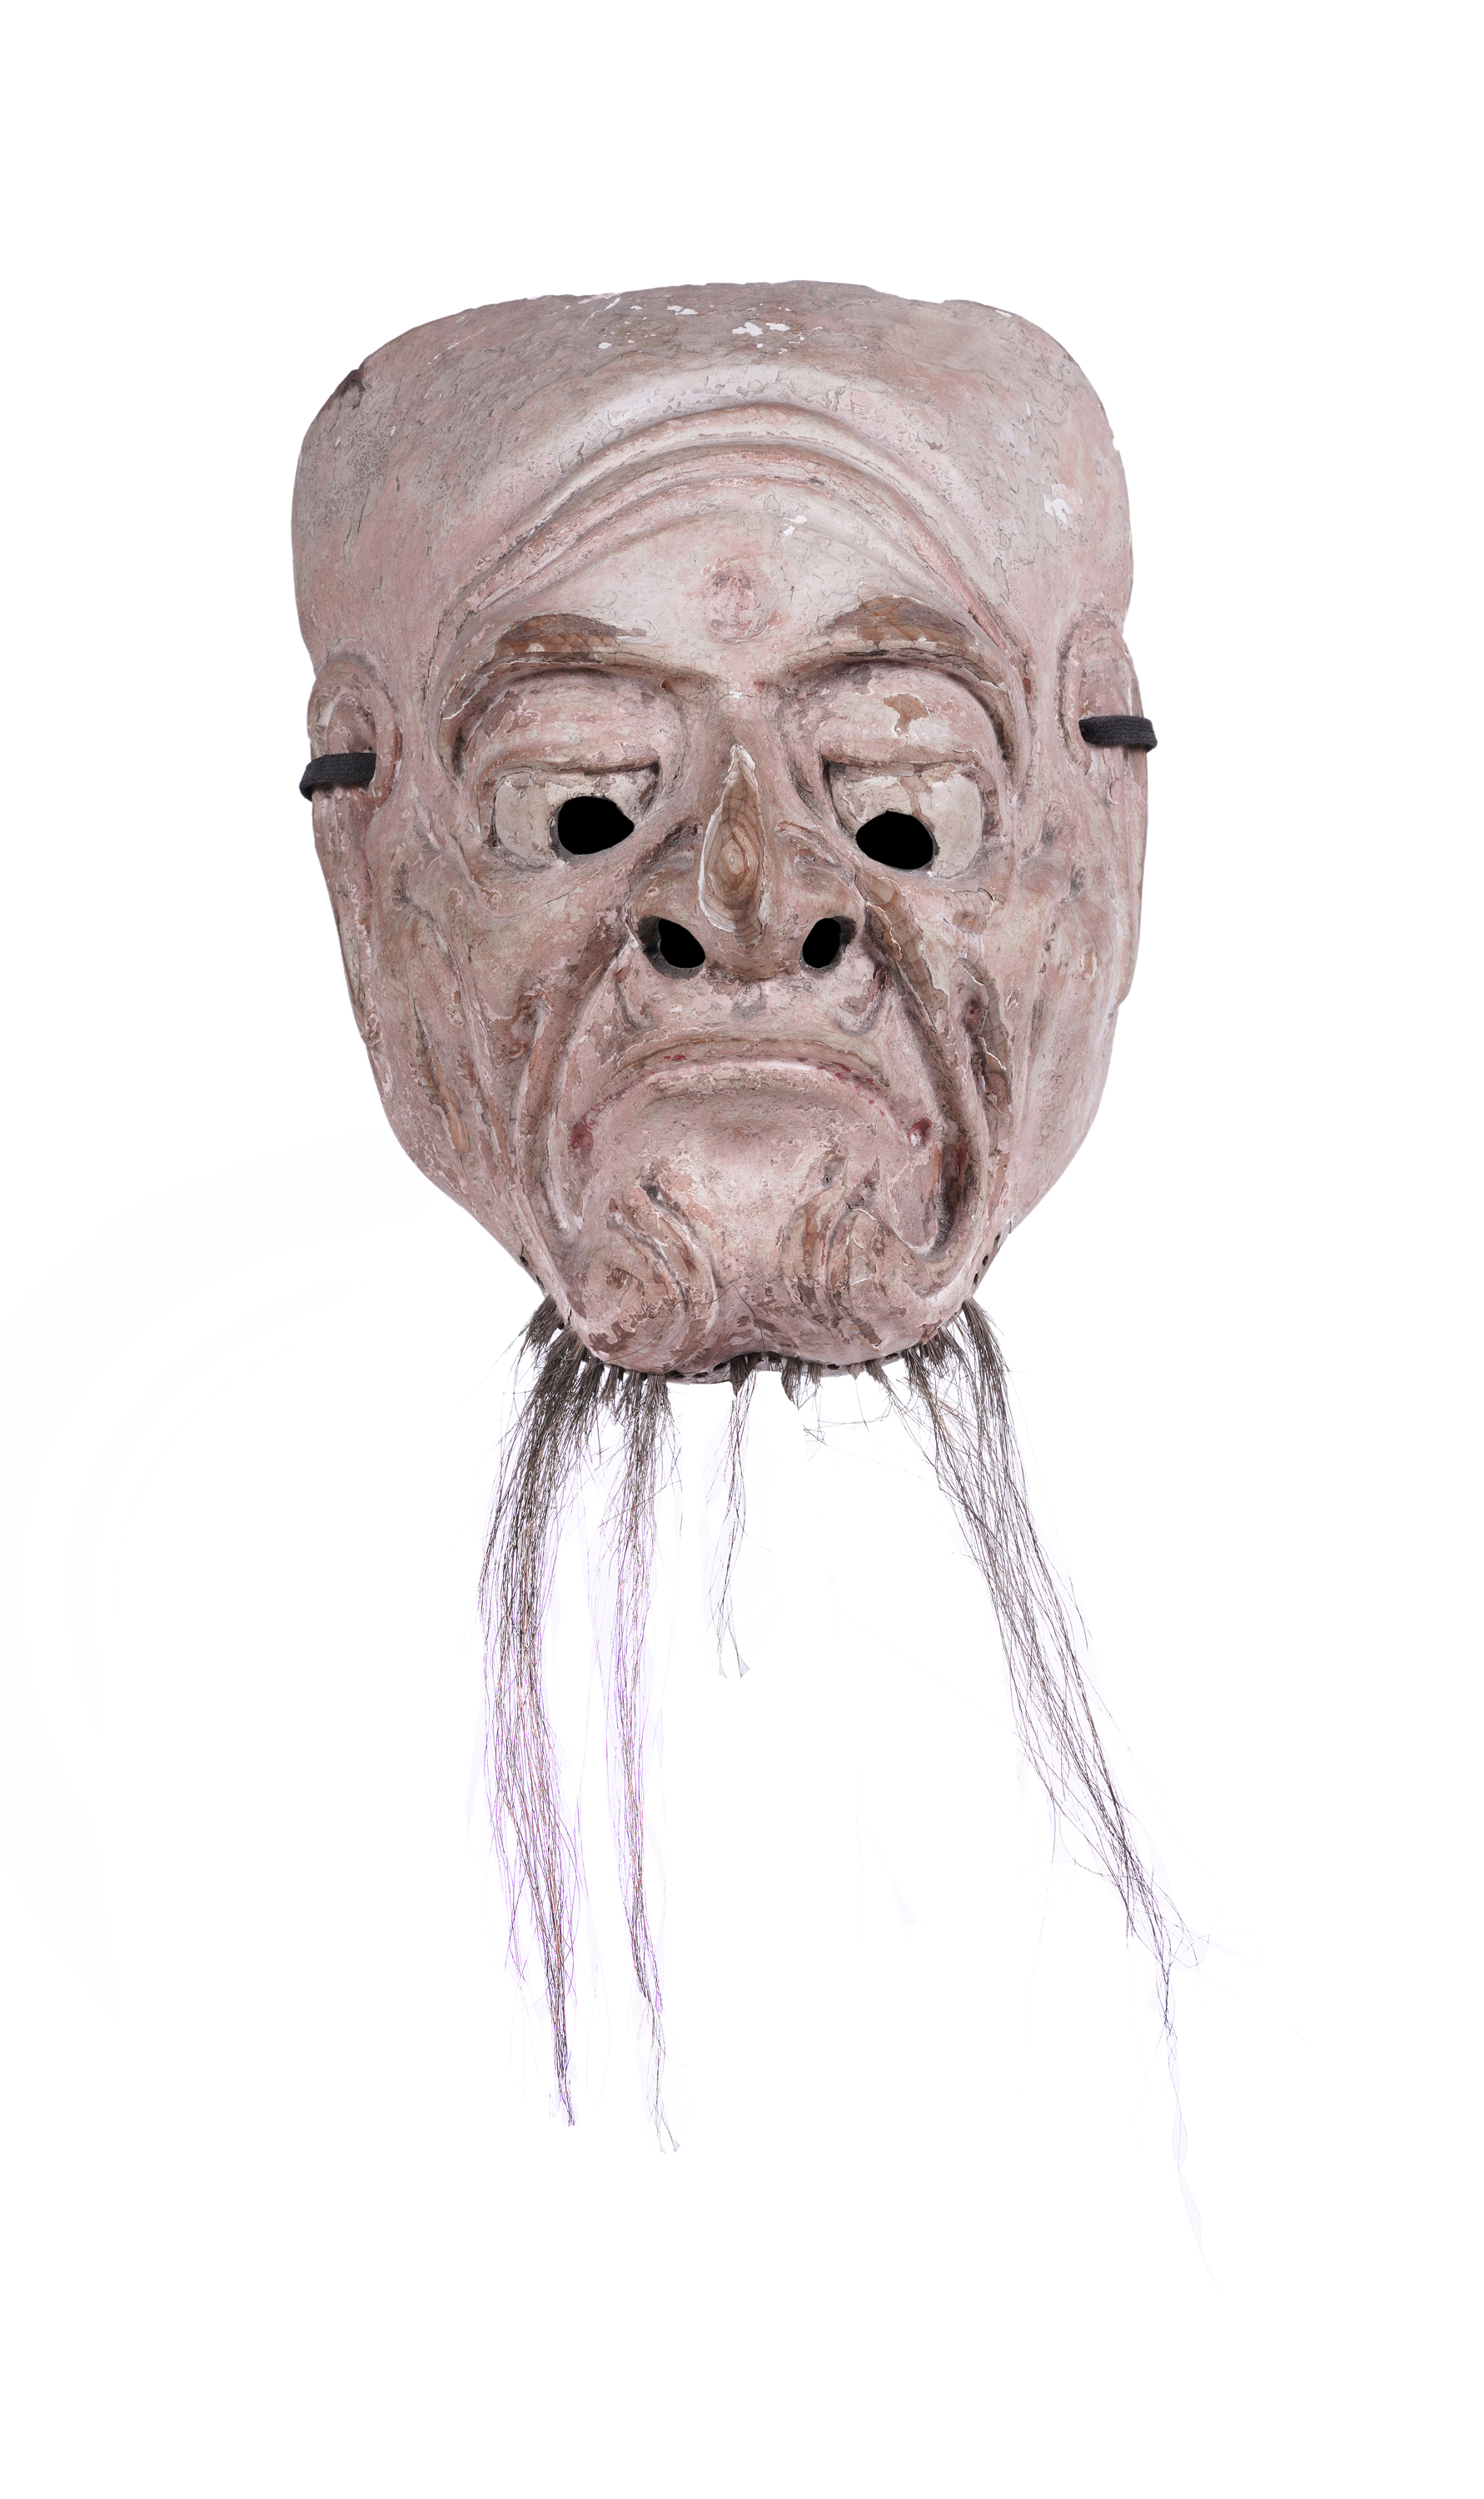 .A LACQUERED WOODEN MASK OF AN OLD MAN Japan, 19th century H: 18,2 cm - w: 14,5 cm Provenance: A